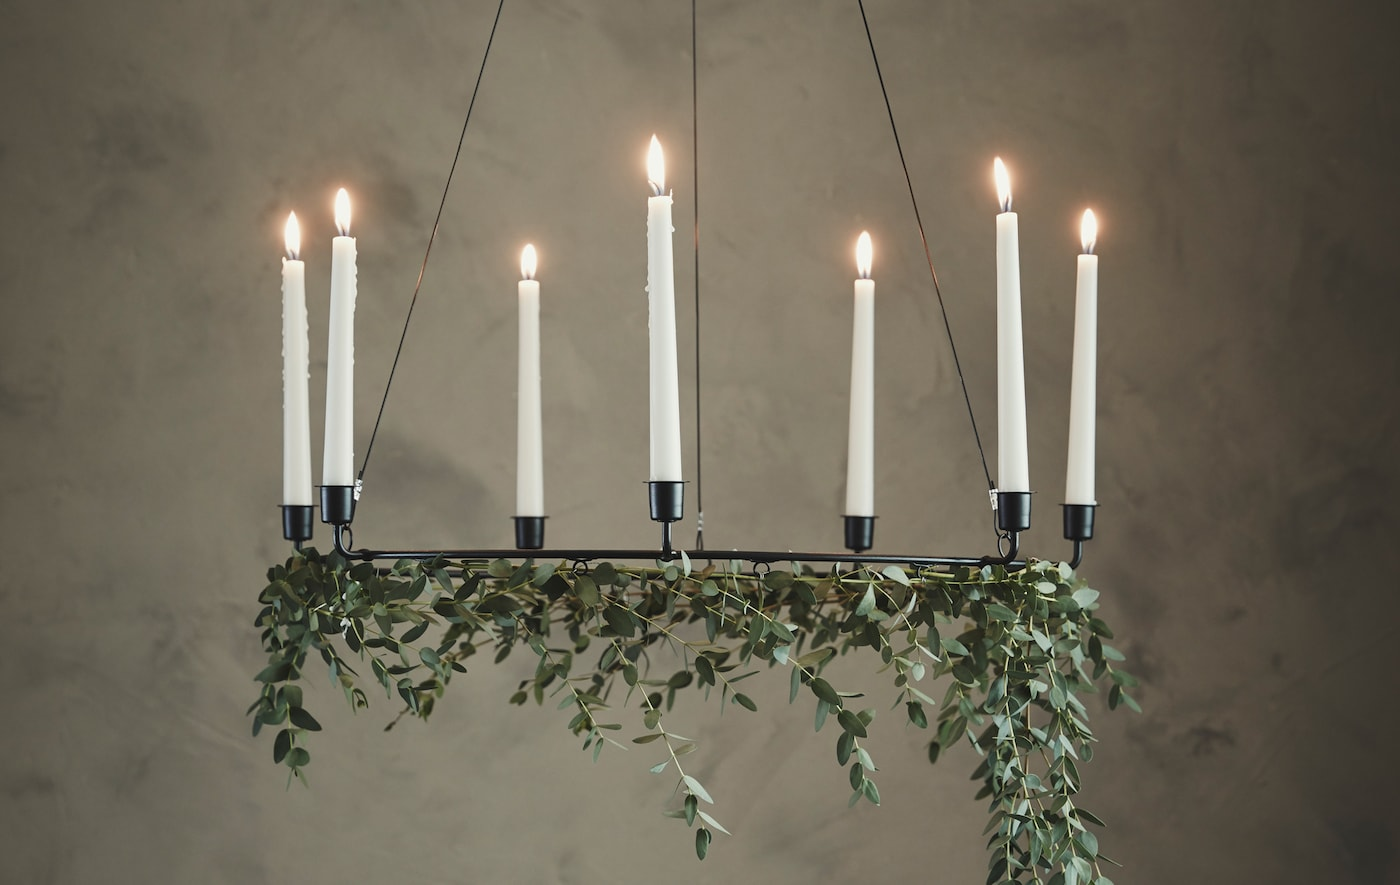 A chandelier with candles and ivy hanging off of it